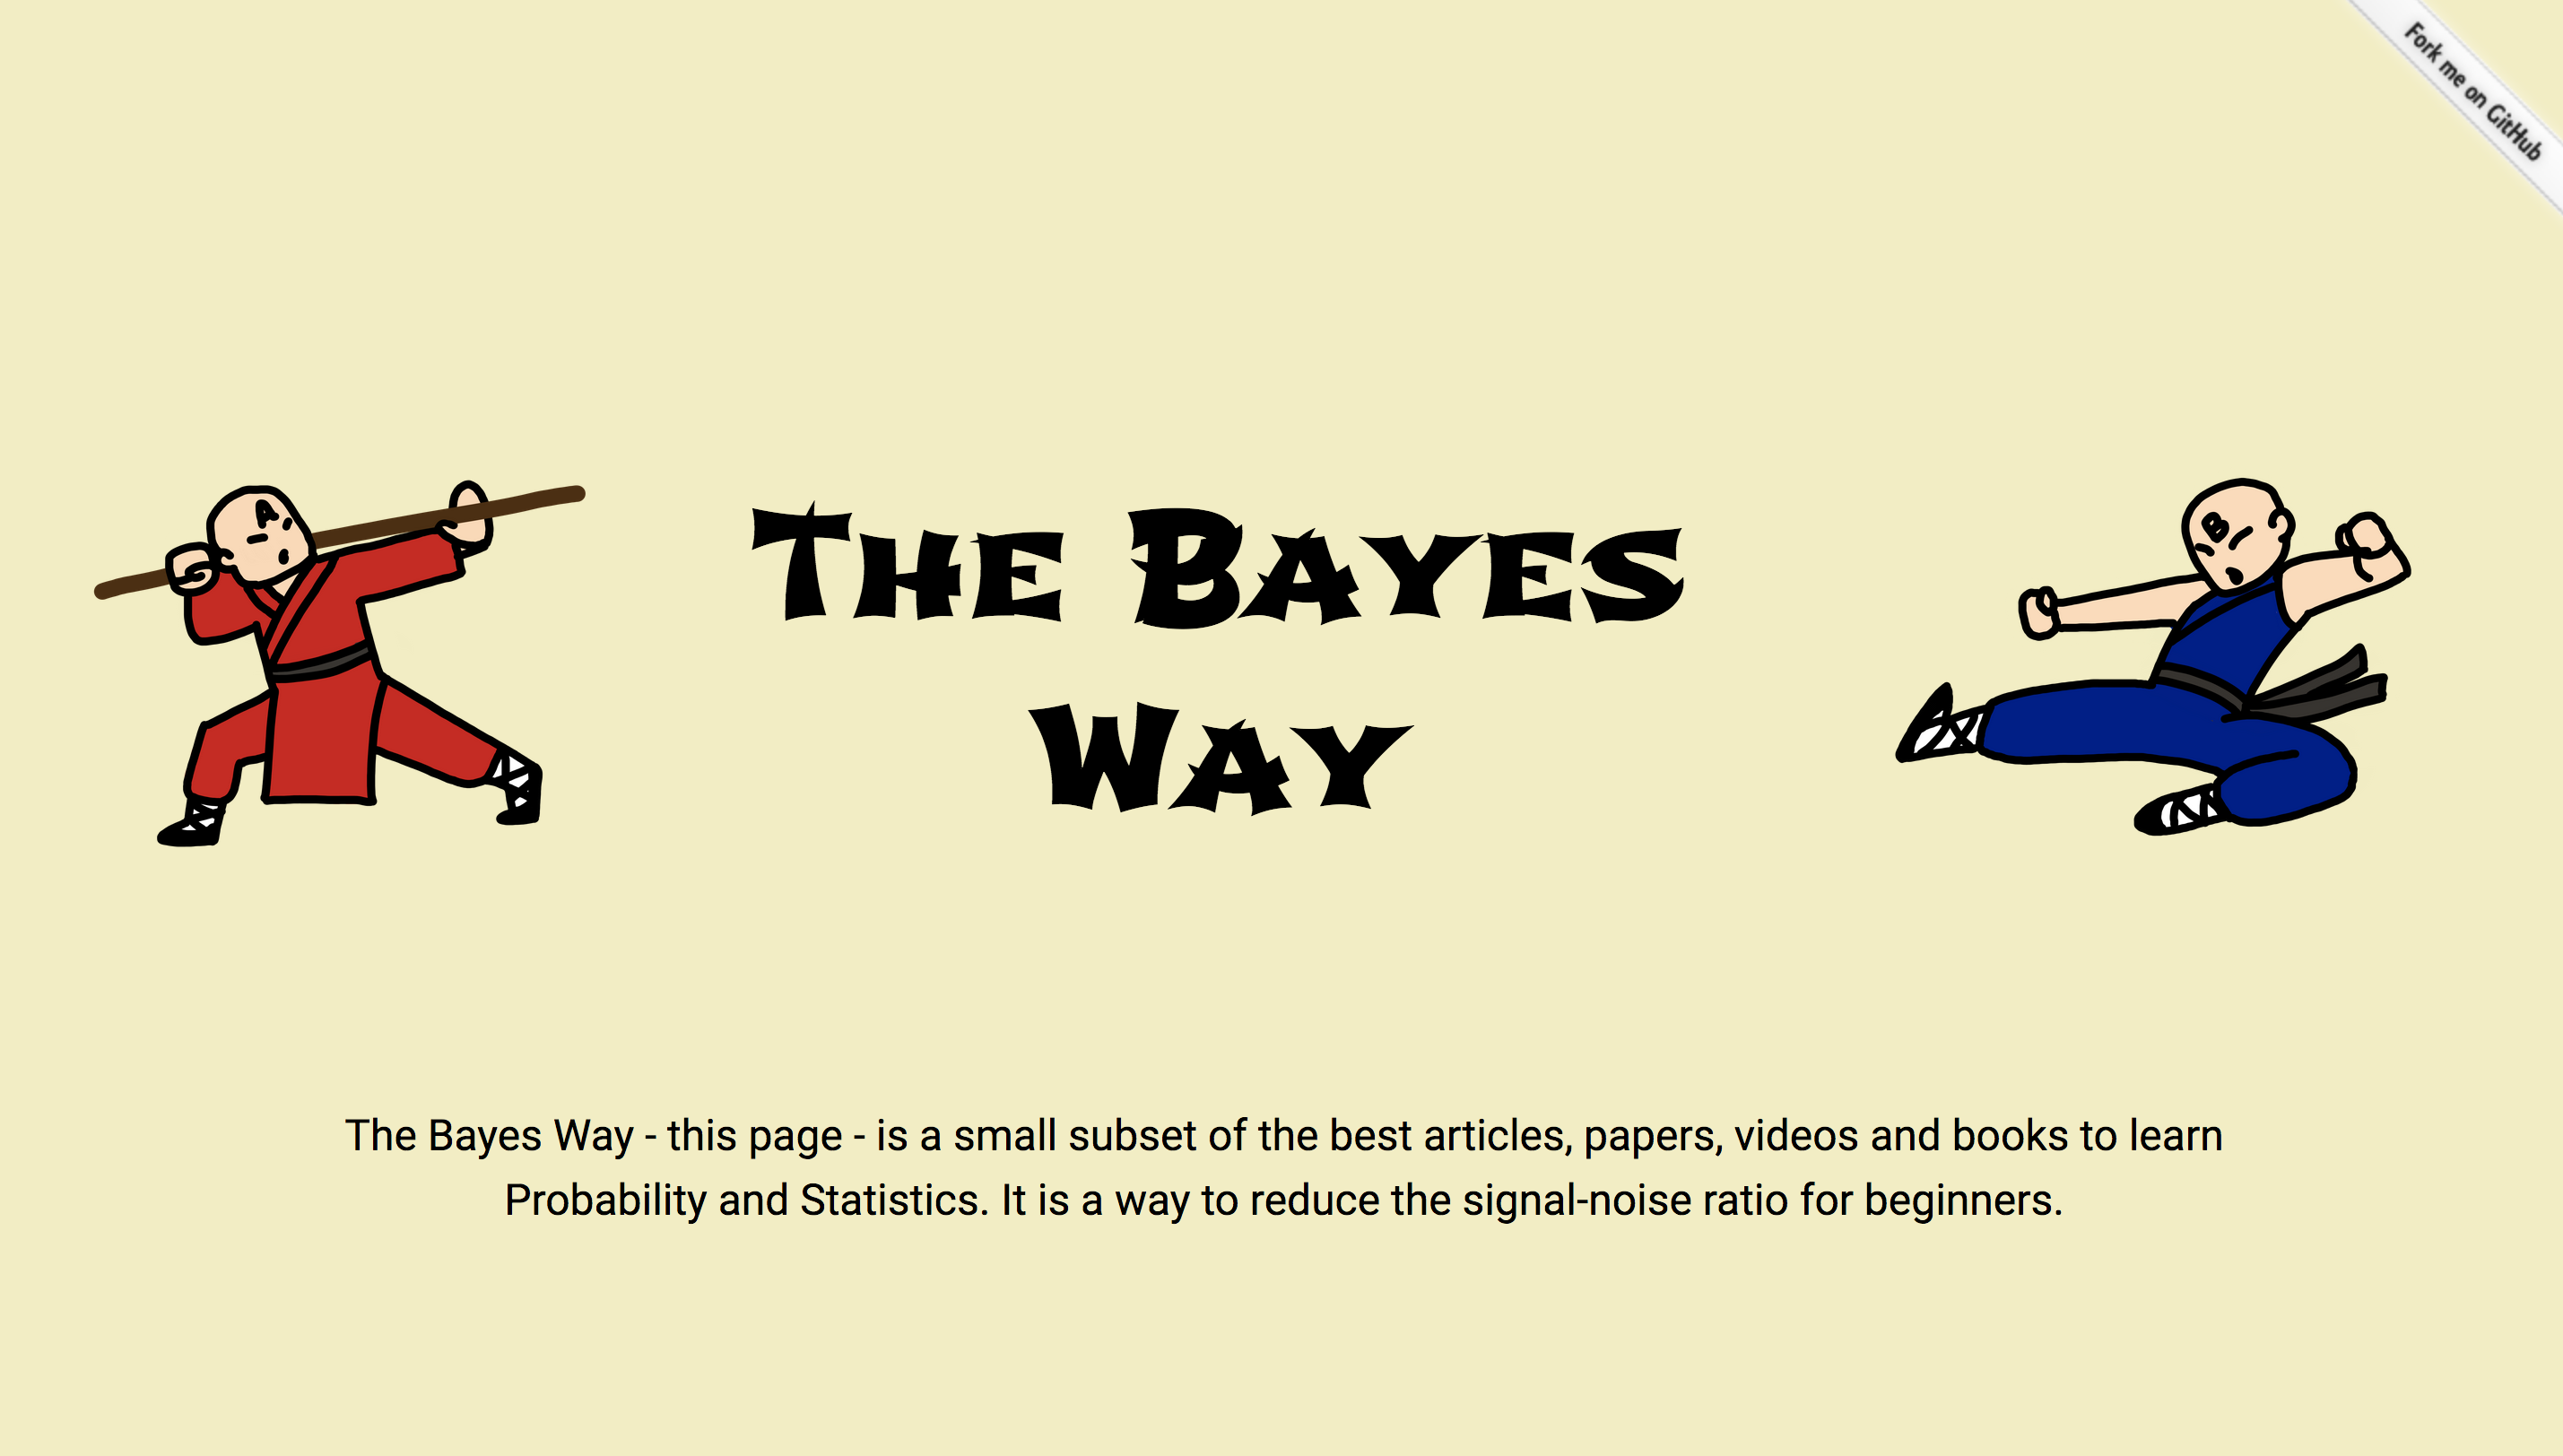 The Bayes Way - the best articles, papers, videos and books